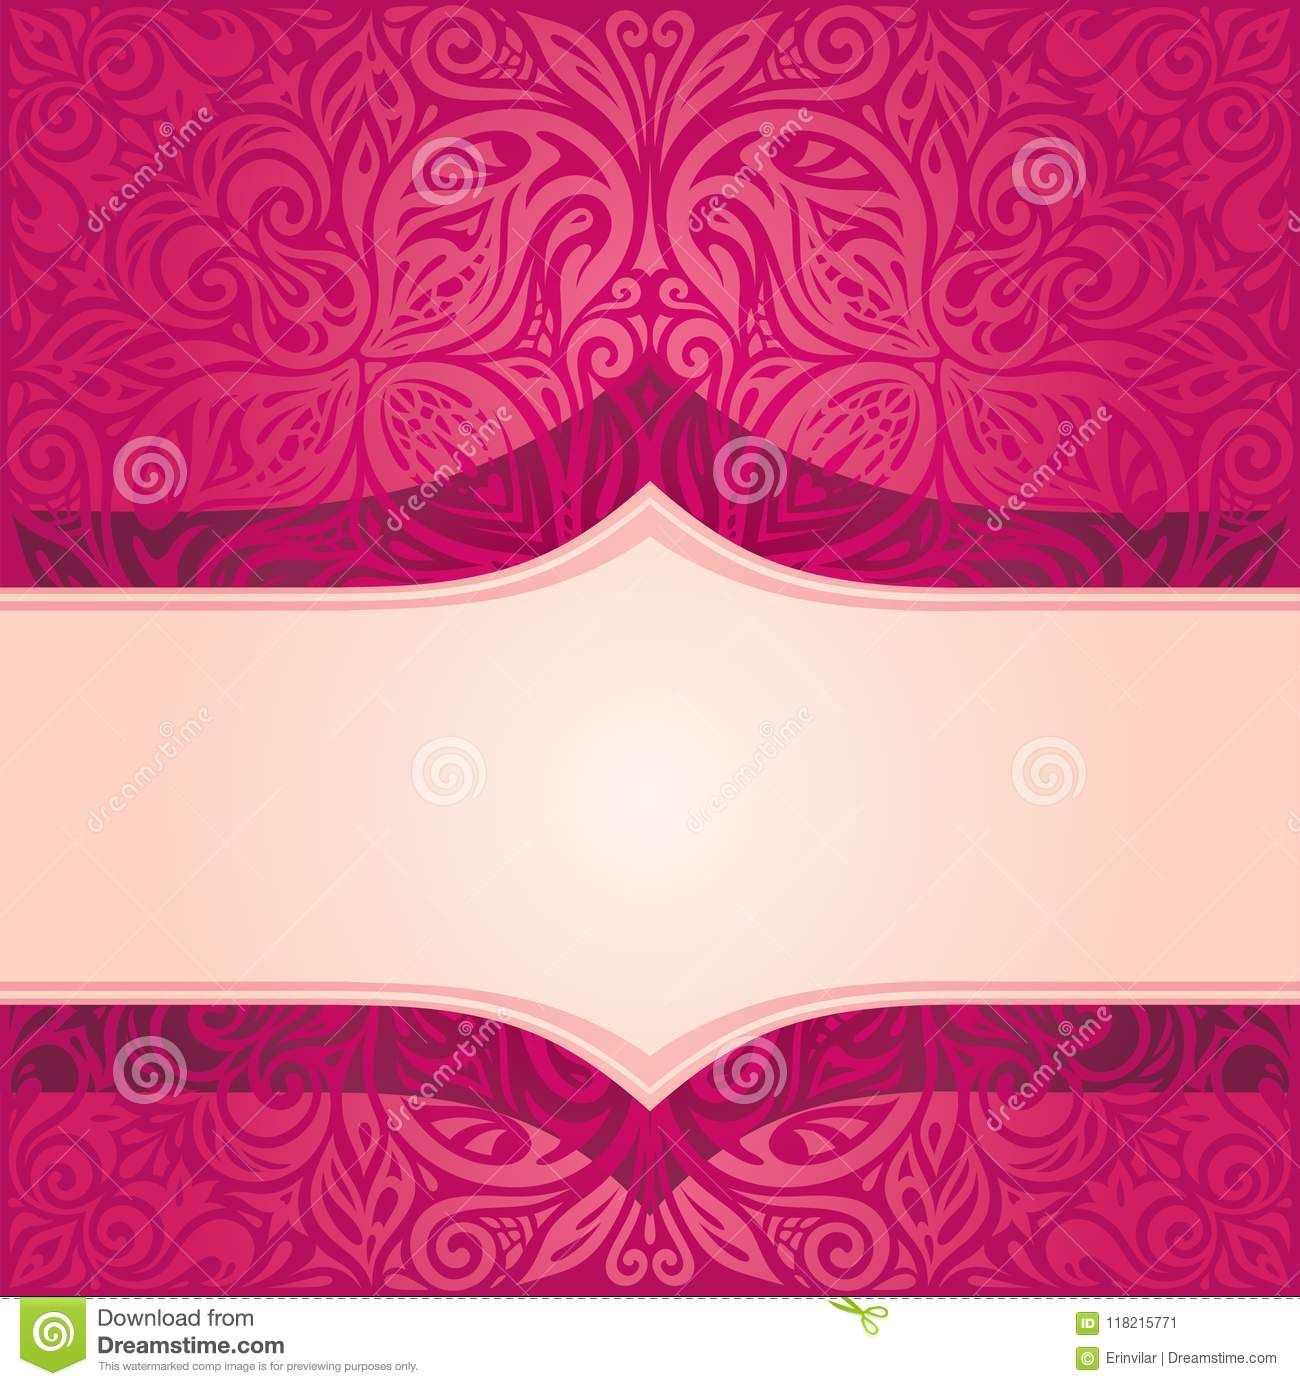 Retro floral red vector pattern wallpaper design in vintage style